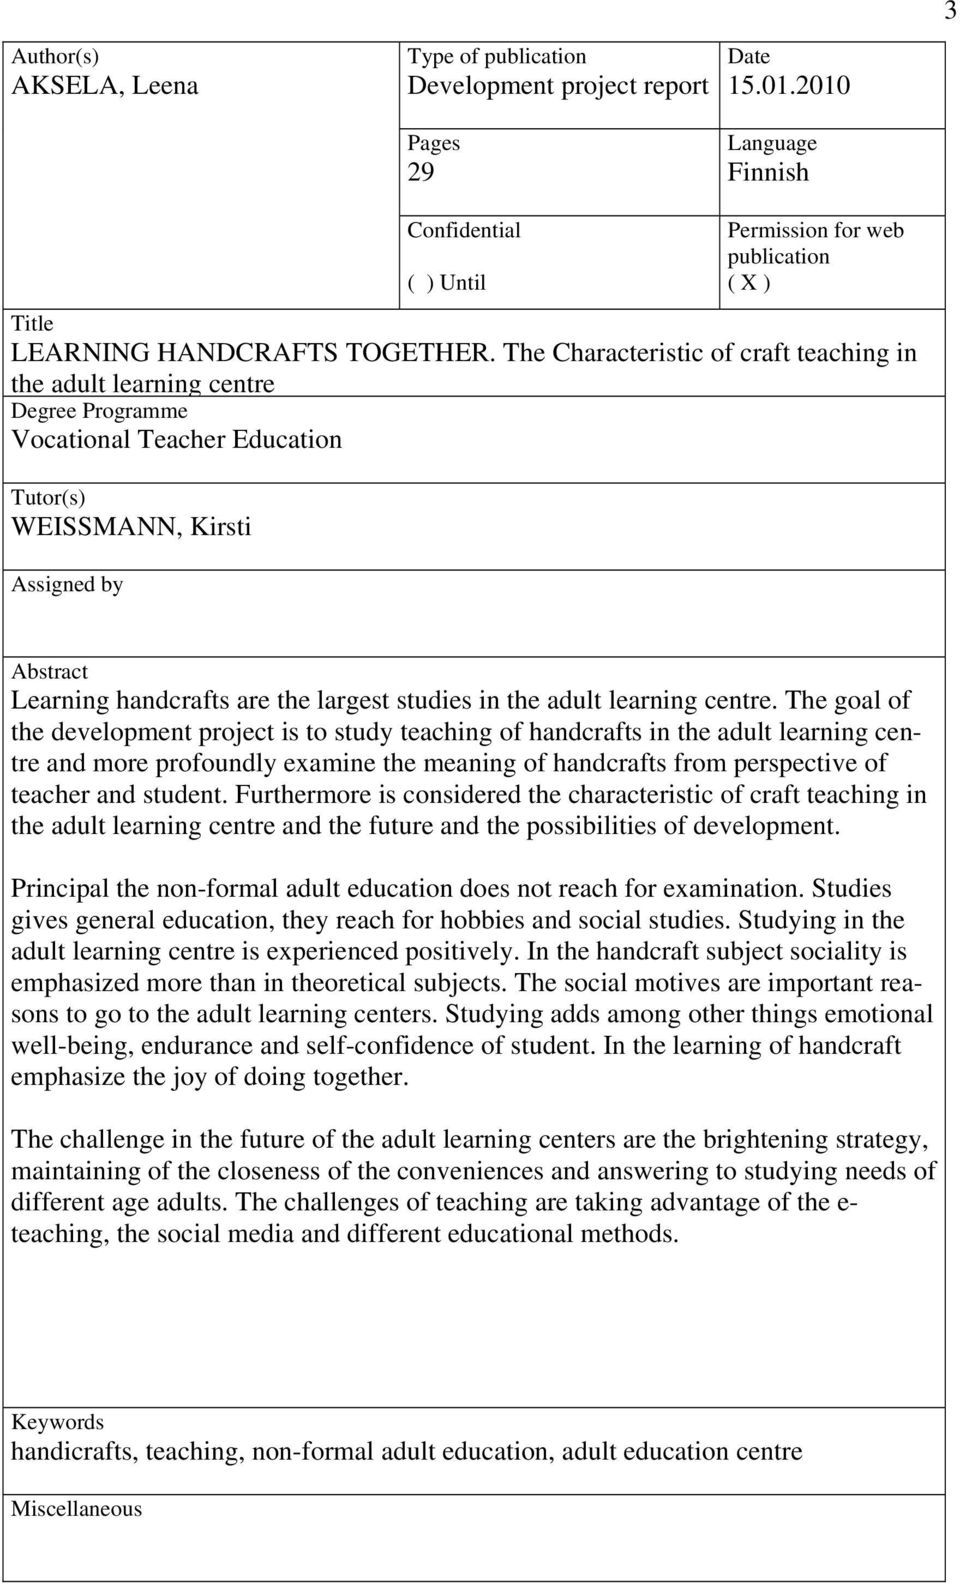 The Characteristic of craft teaching in the adult learning centre Degree Programme Vocational Teacher Education Tutor(s) WEISSMANN, Kirsti Assigned by Abstract Learning handcrafts are the largest